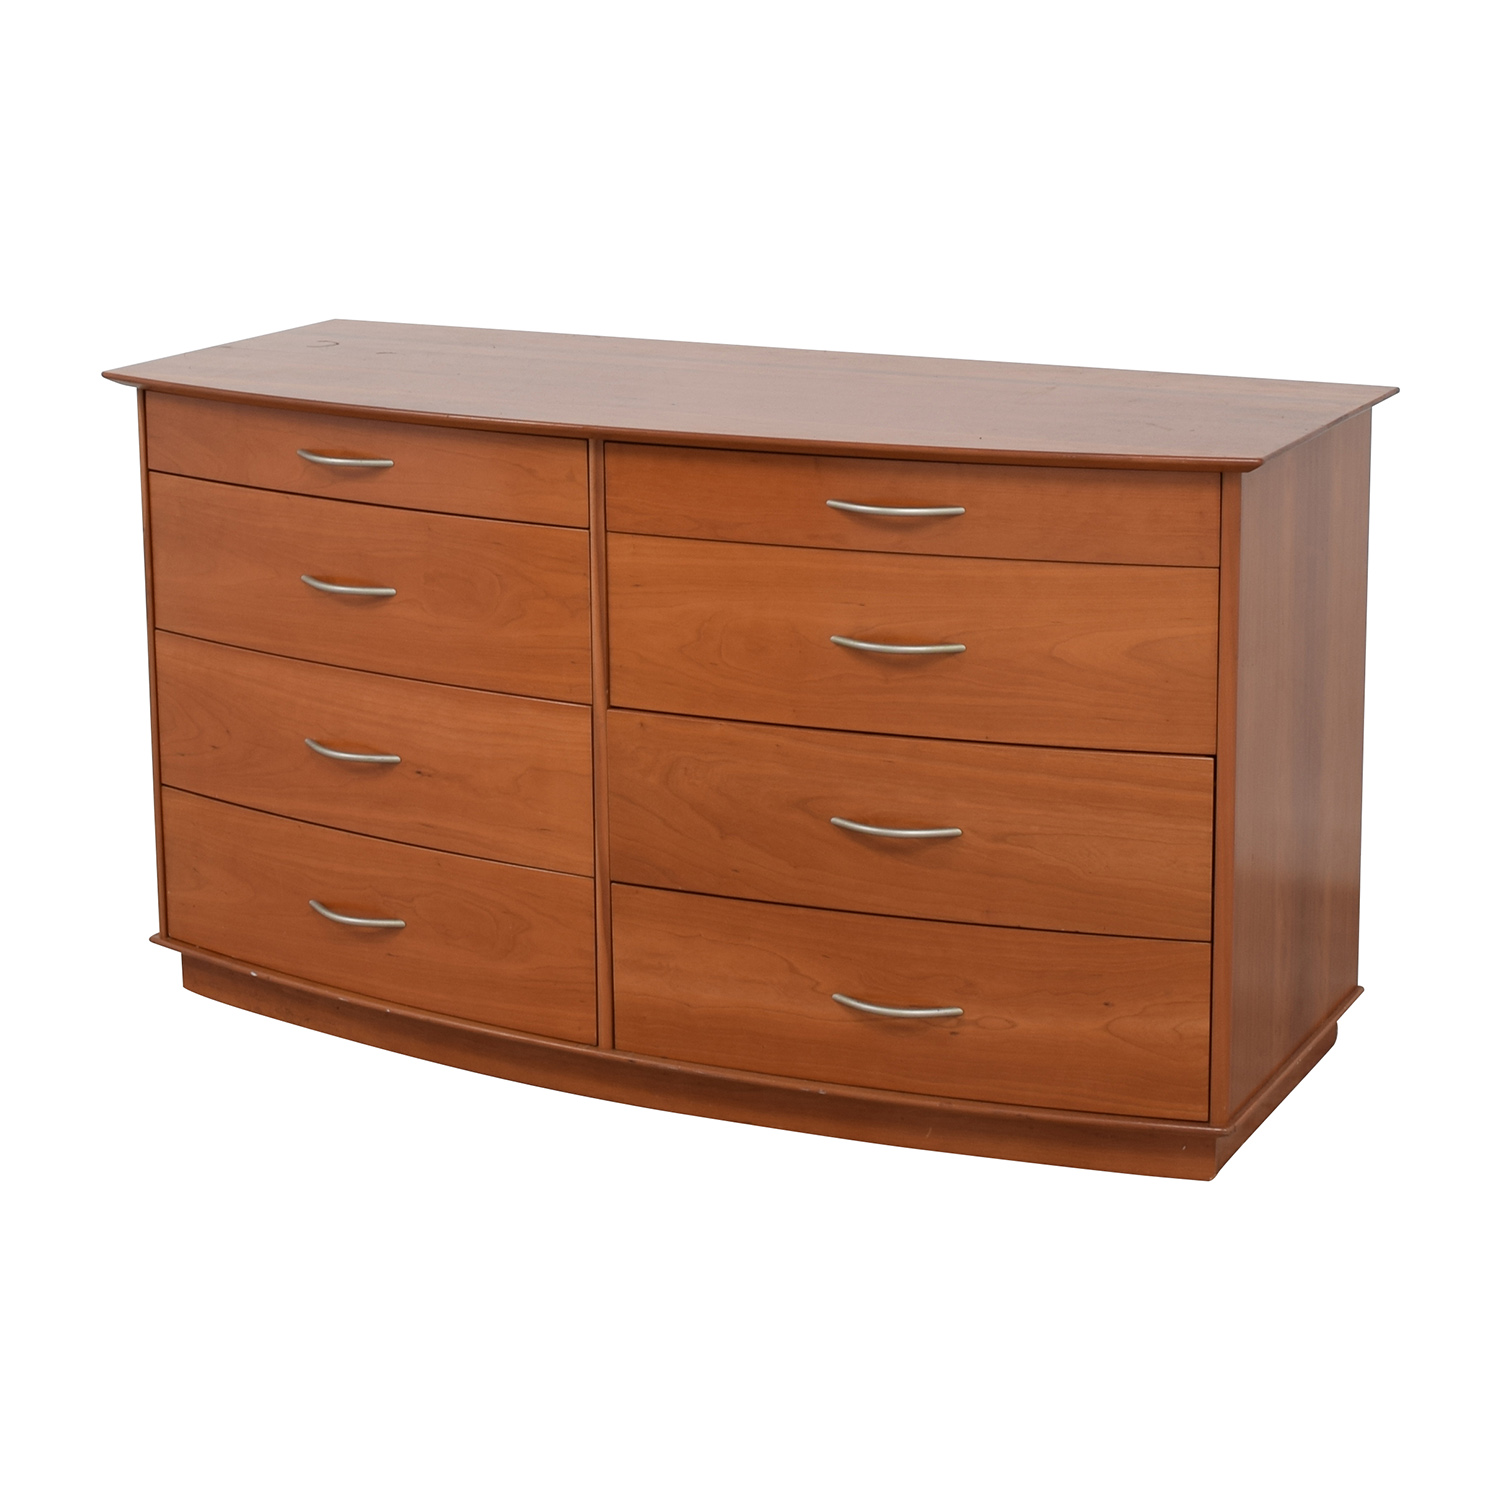 82 Off Light Brown Wooden Eight Drawer Dresser Storage